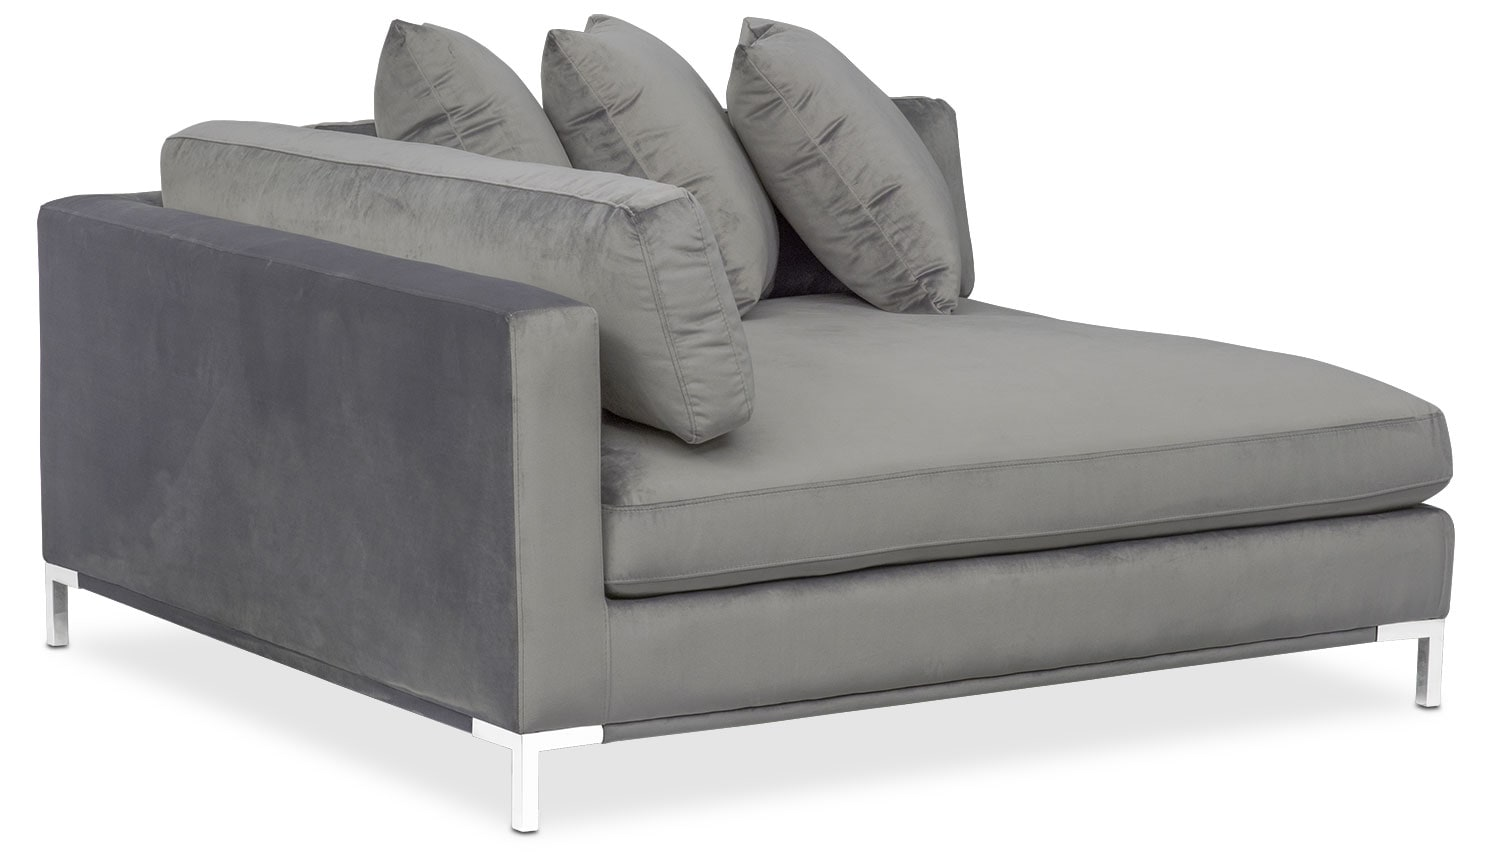 Living Room Furniture - Moda Corner Sofa - Gray